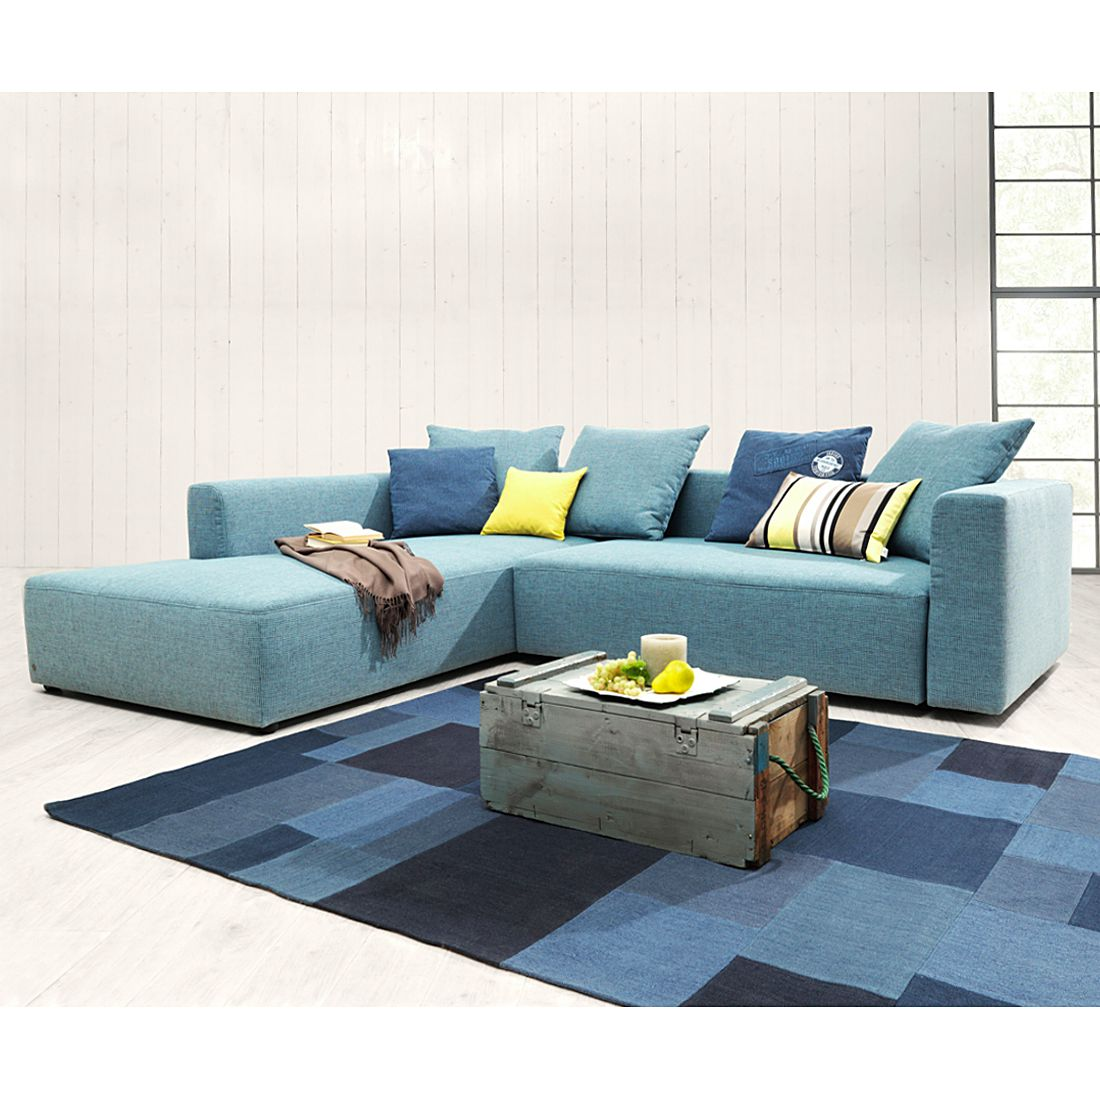 home24 Ecksofa Heaven Casual M